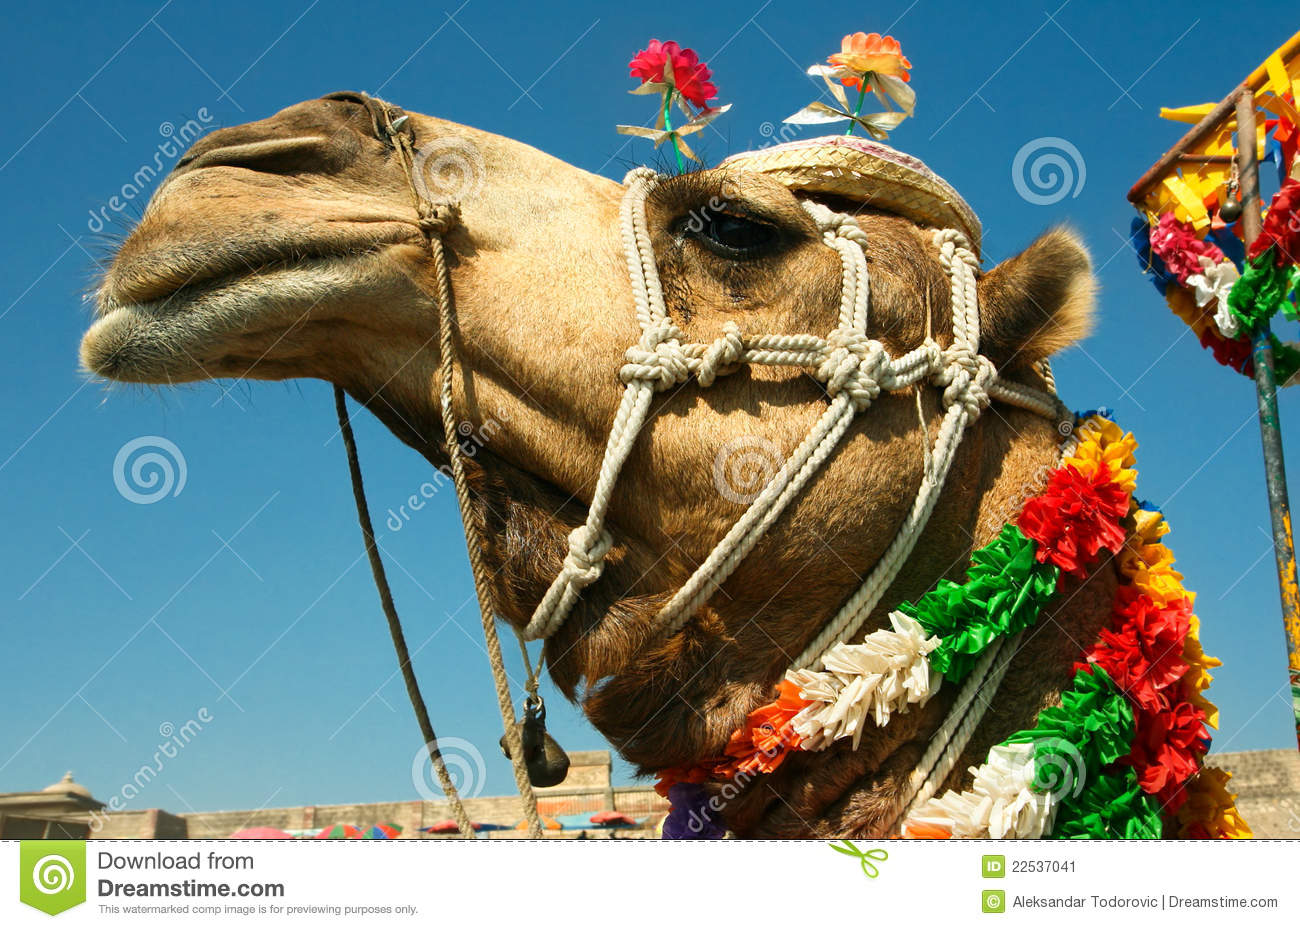 Head of a camel on safari - desert